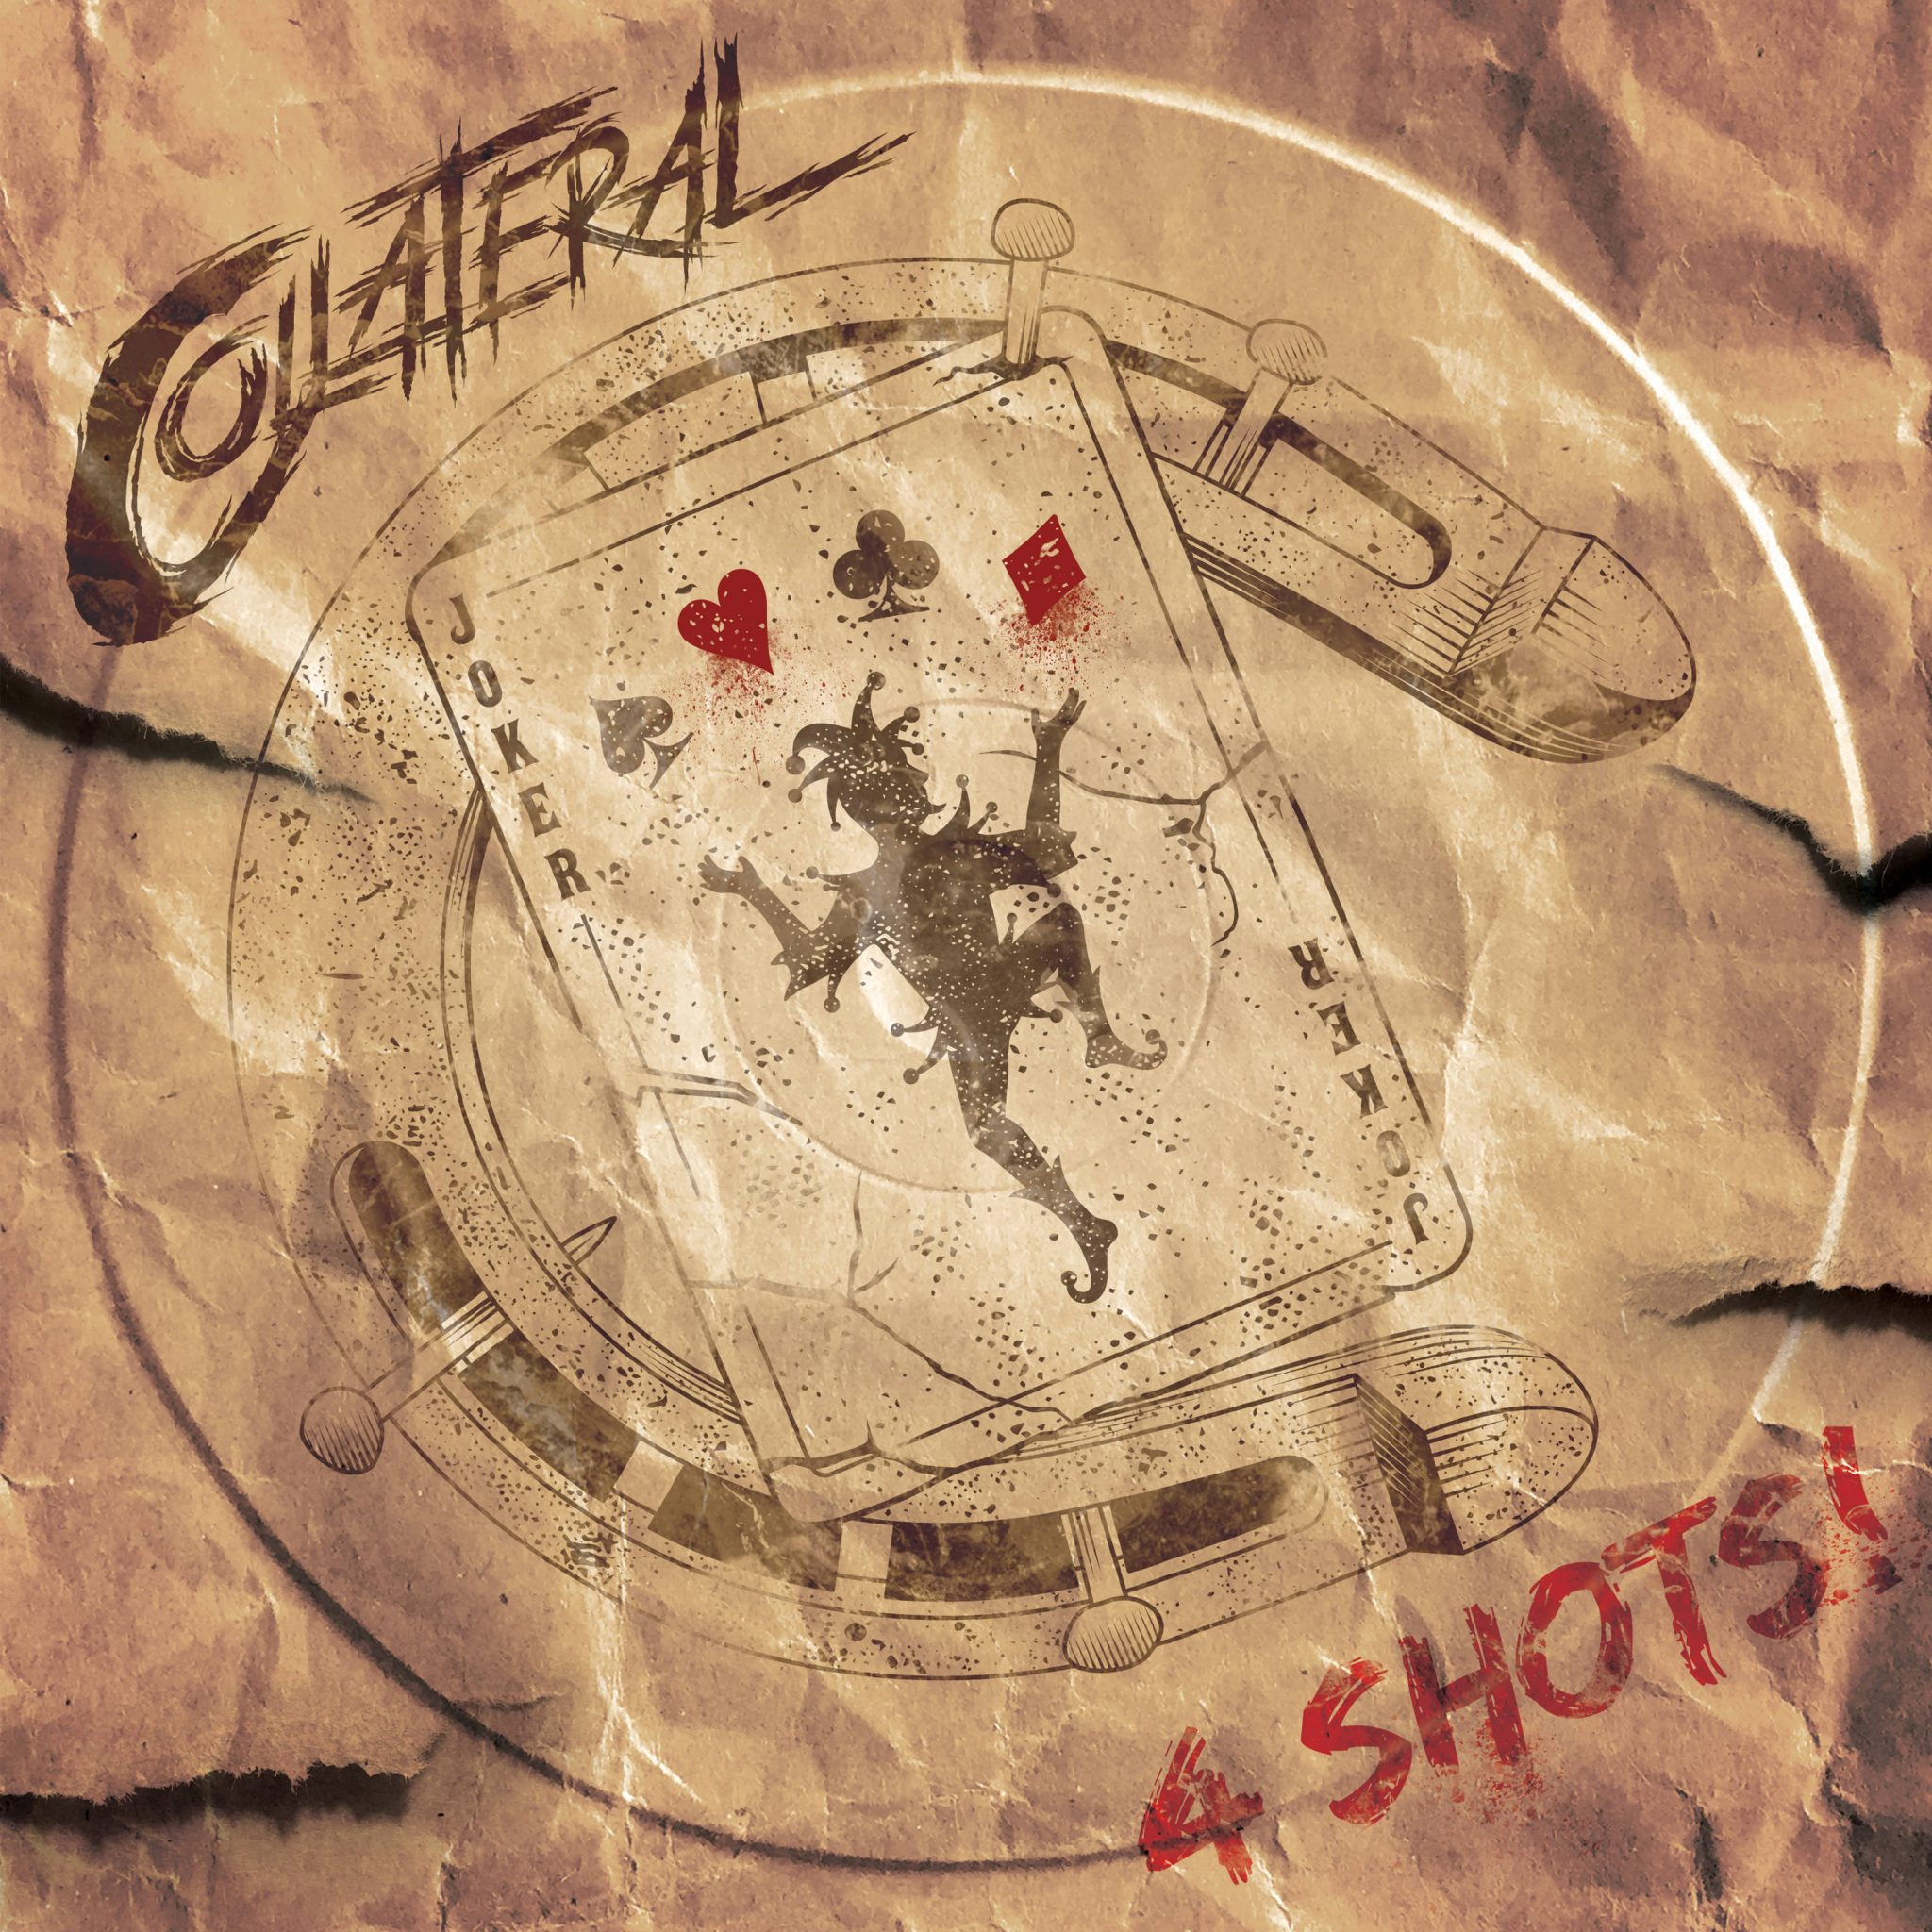 Debut EP 4 Shots building Melodic Rock Collateral